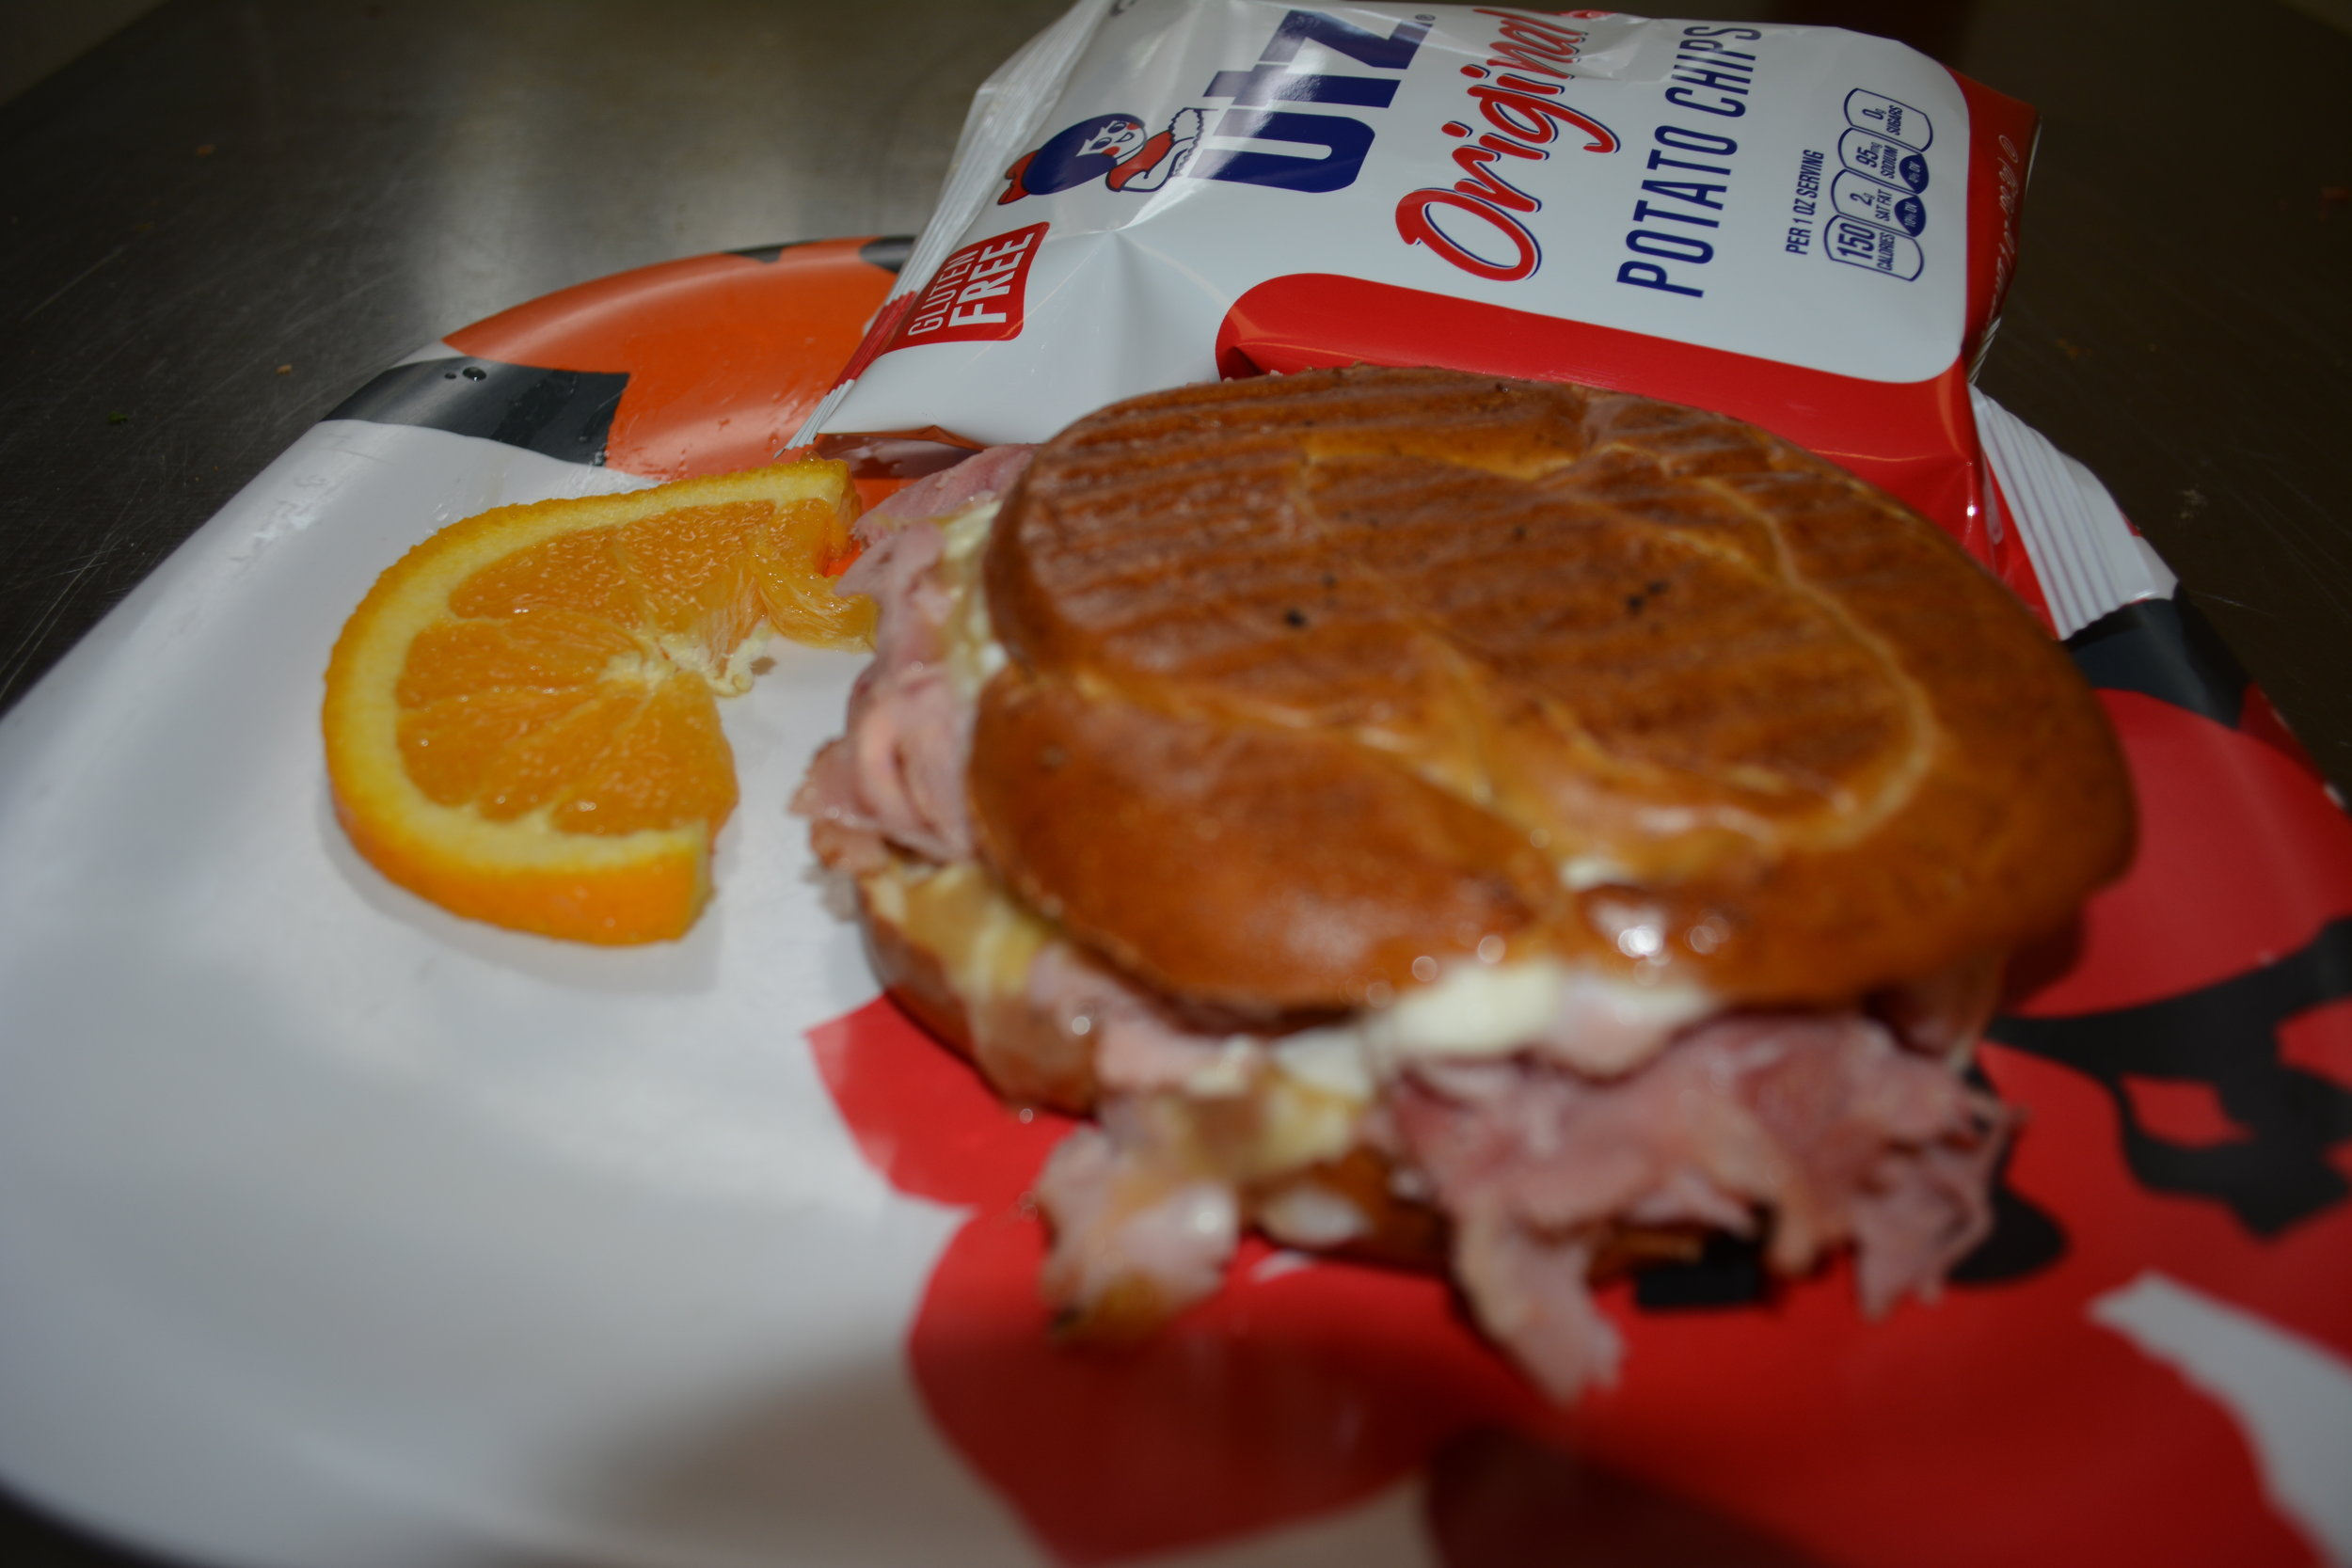 Stevie B Hot Hammer -  Baked ham and farmers cheese, with mayonnaise and a sweet honey mustard